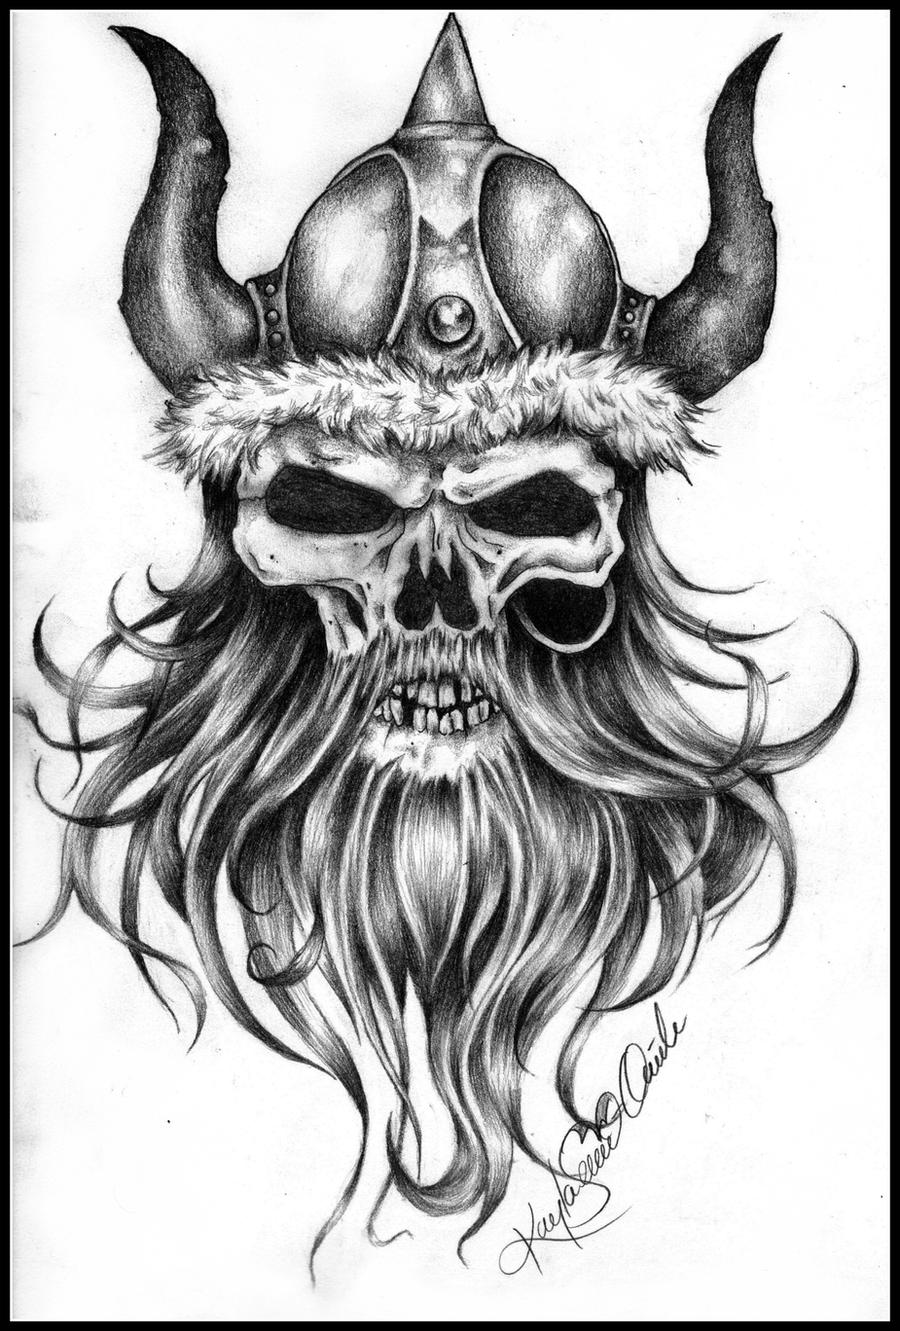 Viking skull 3 by kaylasevier traditional art drawings fantasy 2012